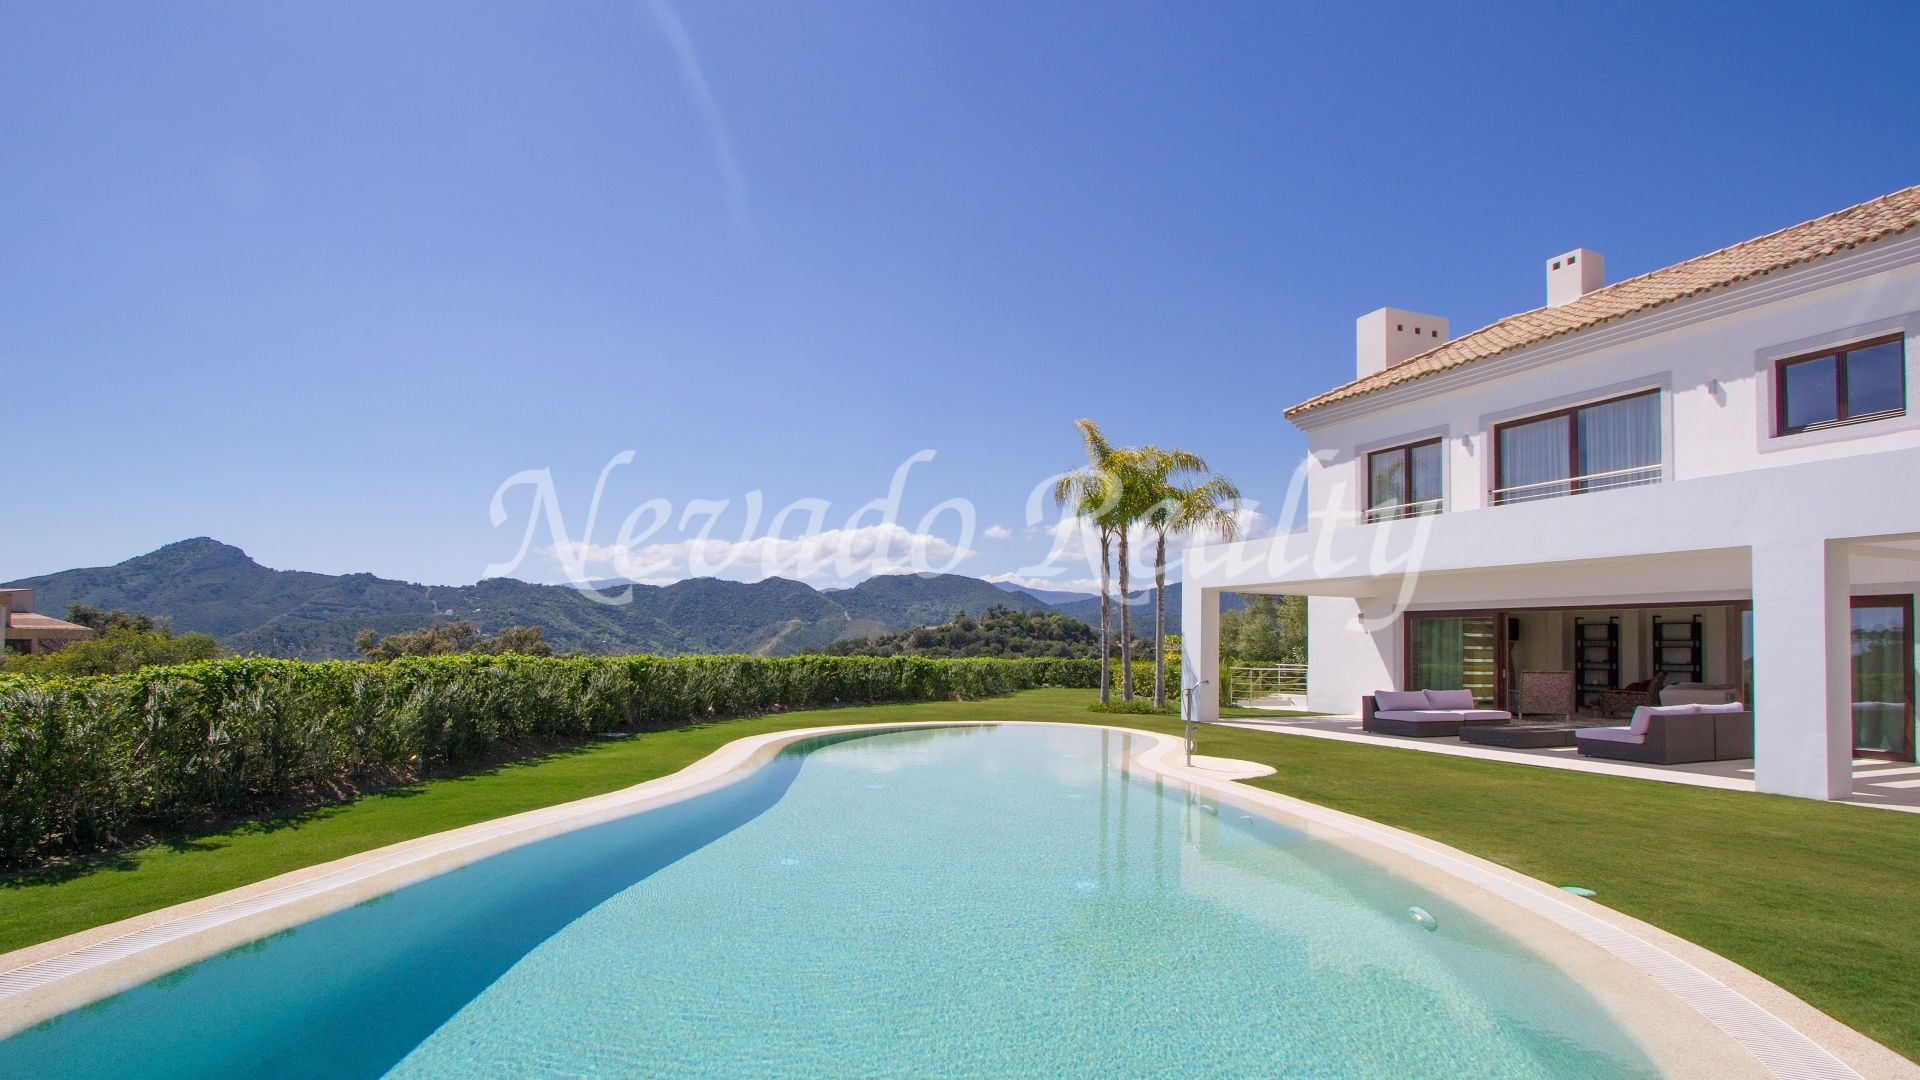 Fantastic villa for sale within an exclusive golf and country club, La Zagaleta